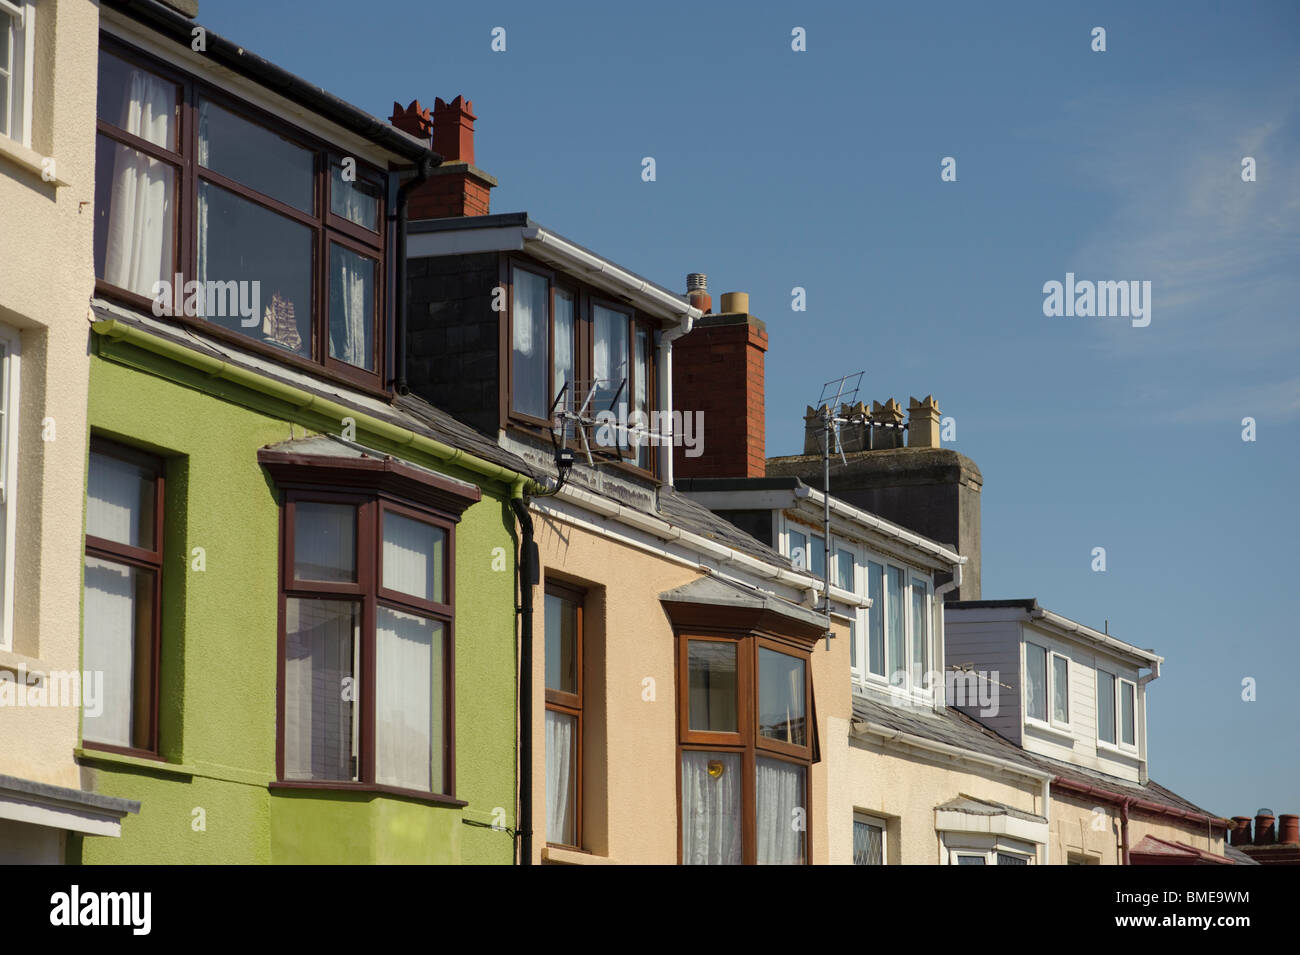 Loft conversions on a row of terraced houses, UK - Stock Image